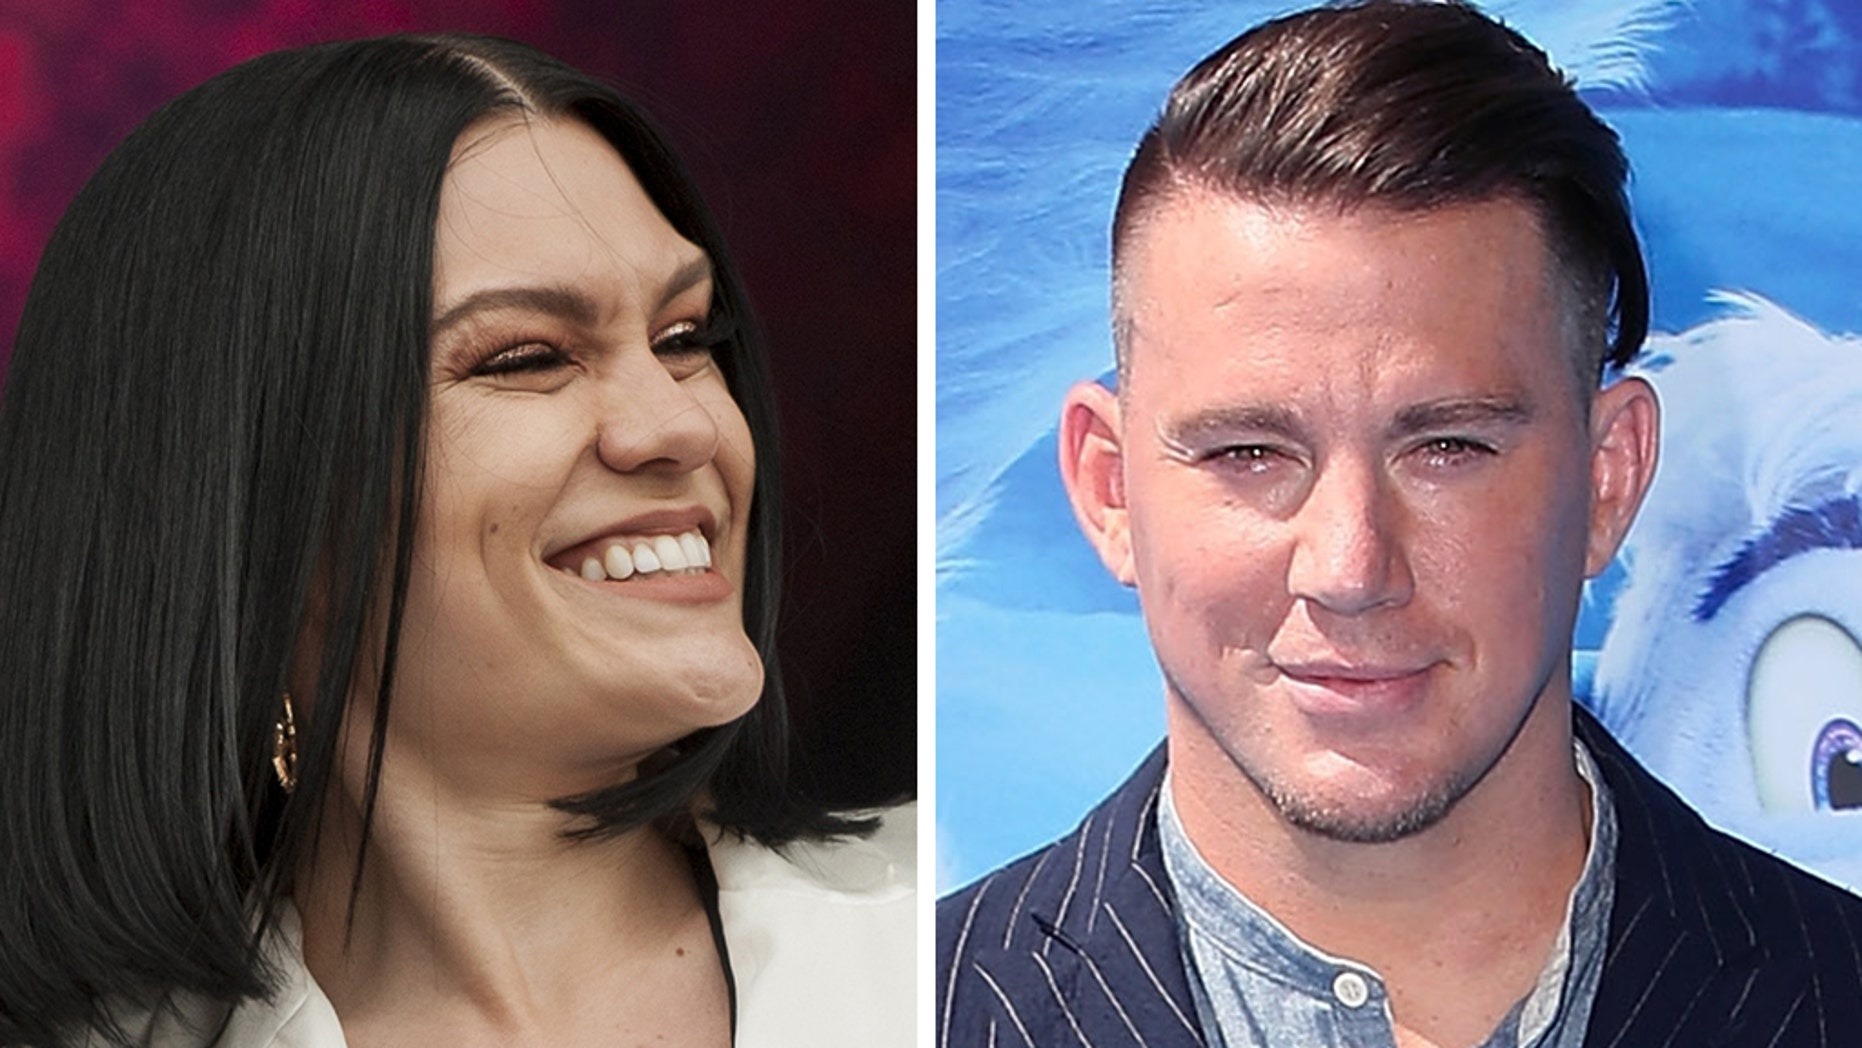 Channing Tatum dating Jessie J? class=